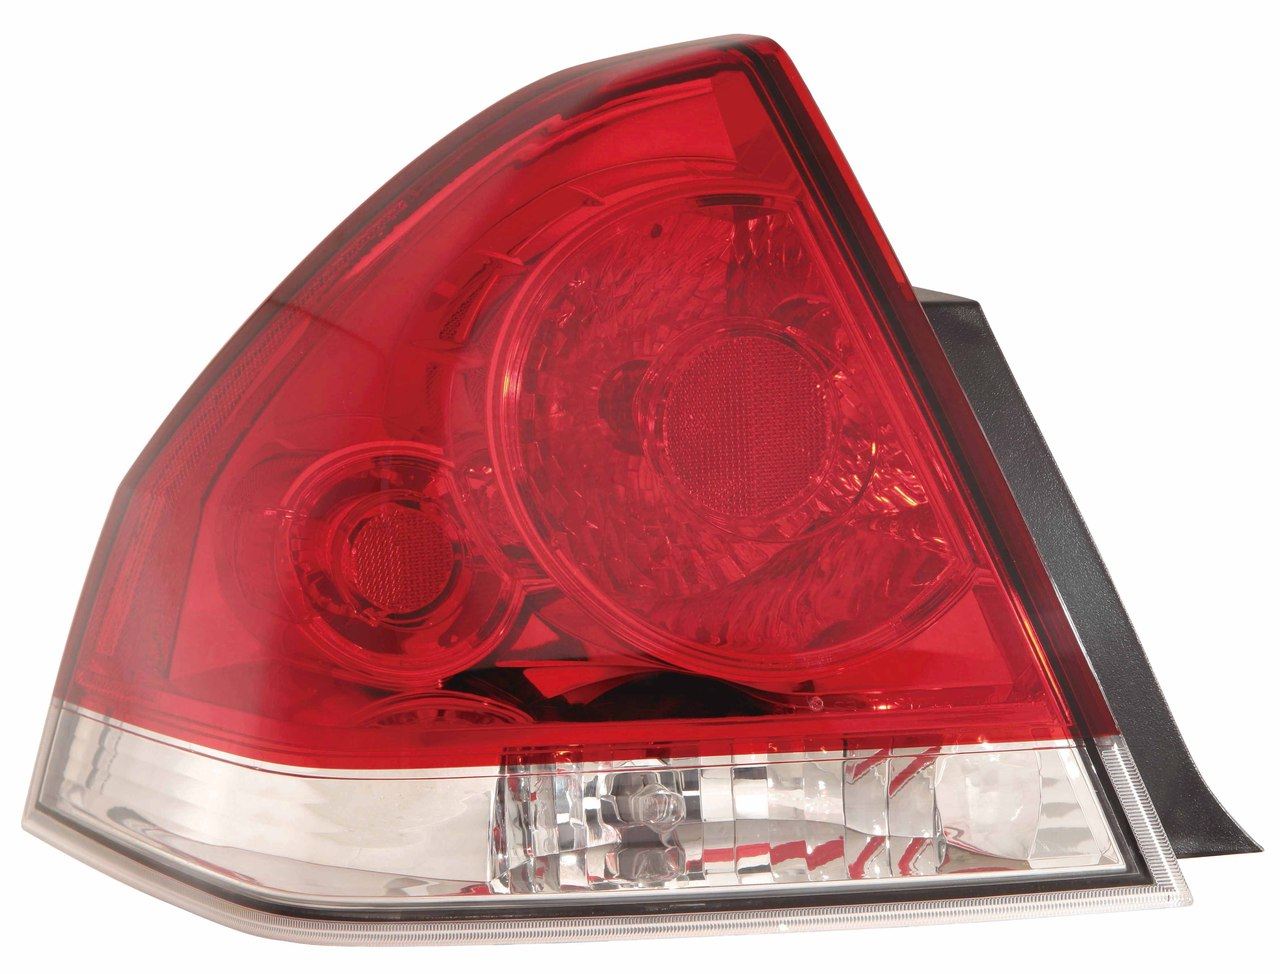 Chevrolet Impala 2010 2011 2012 2013 2014 tail light left driver